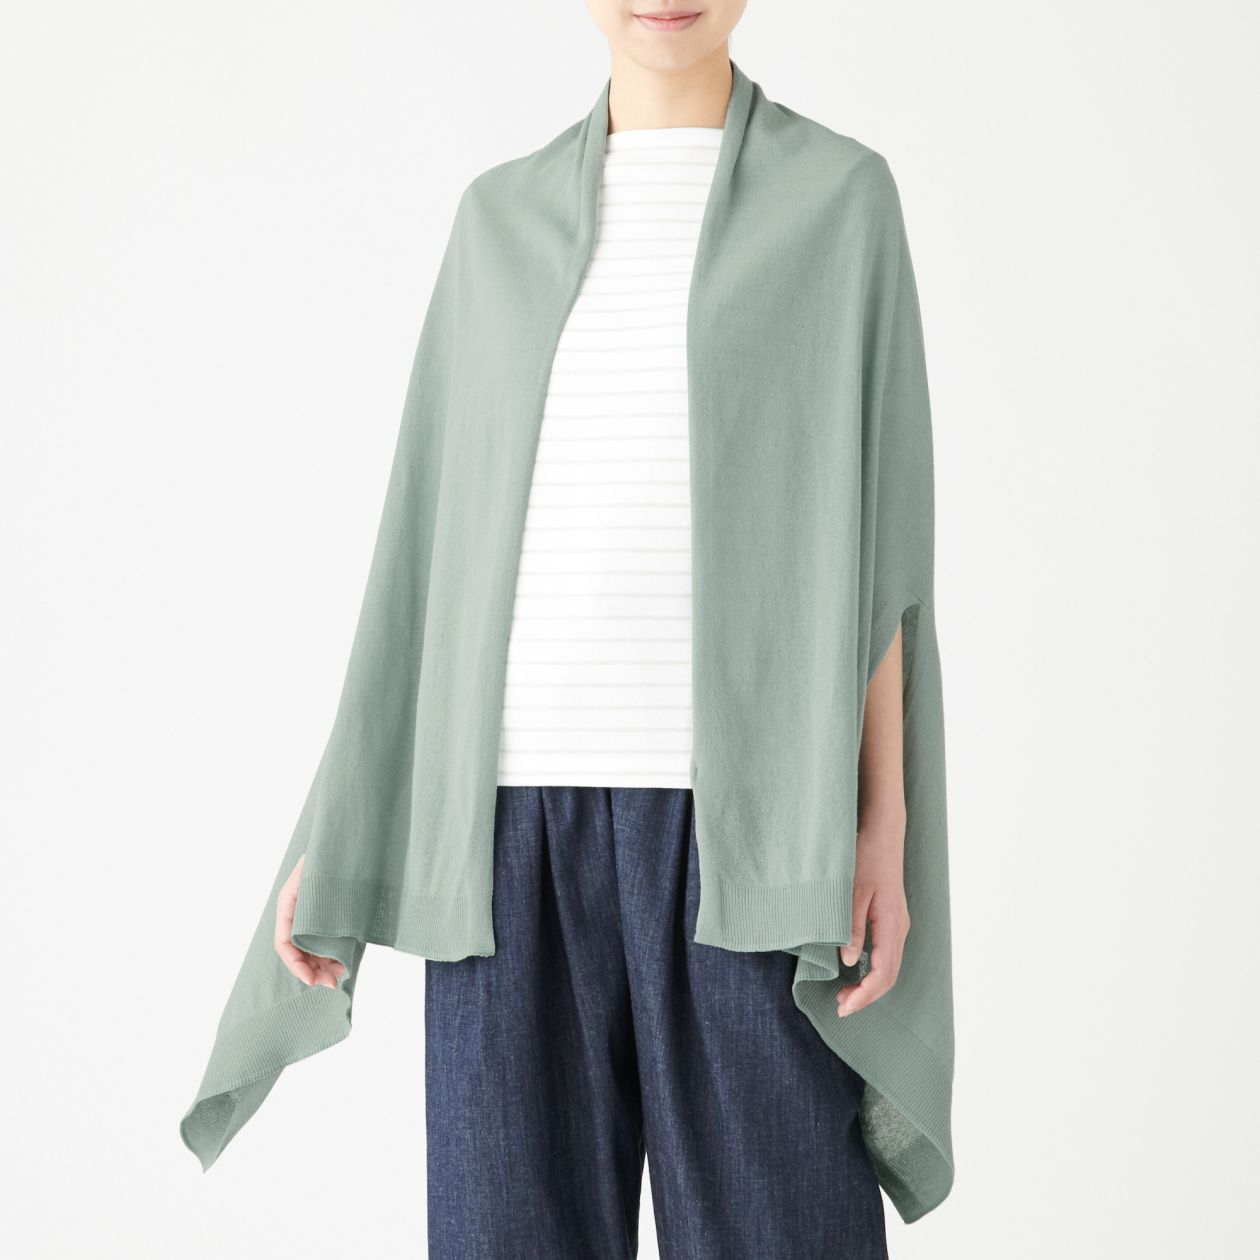 Organic Cotton High Twisted Uv Protection Cape With Holes